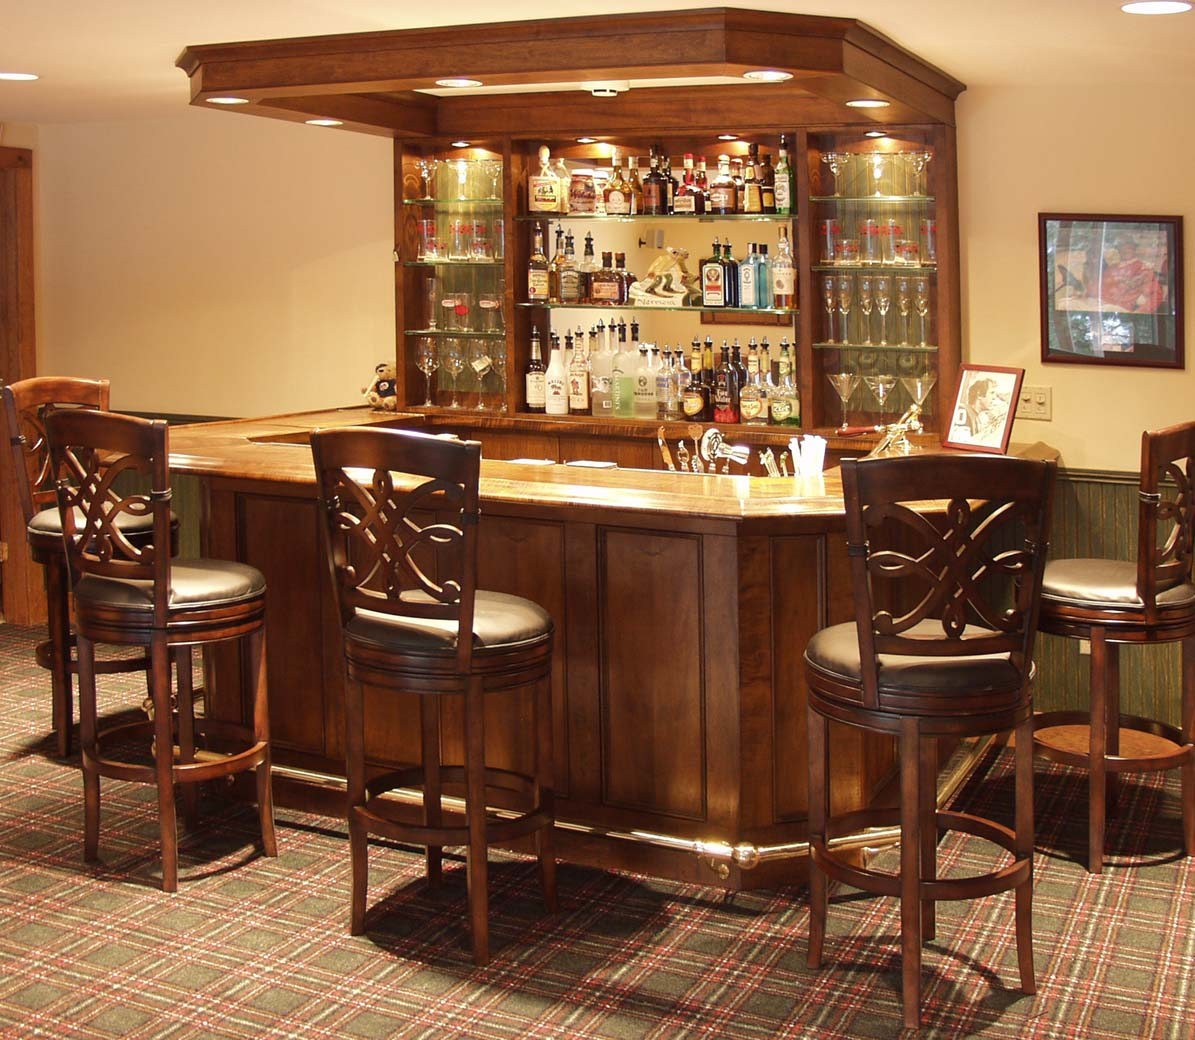 Dorset custom furniture a woodworkers photo journal the for Bar designs at home